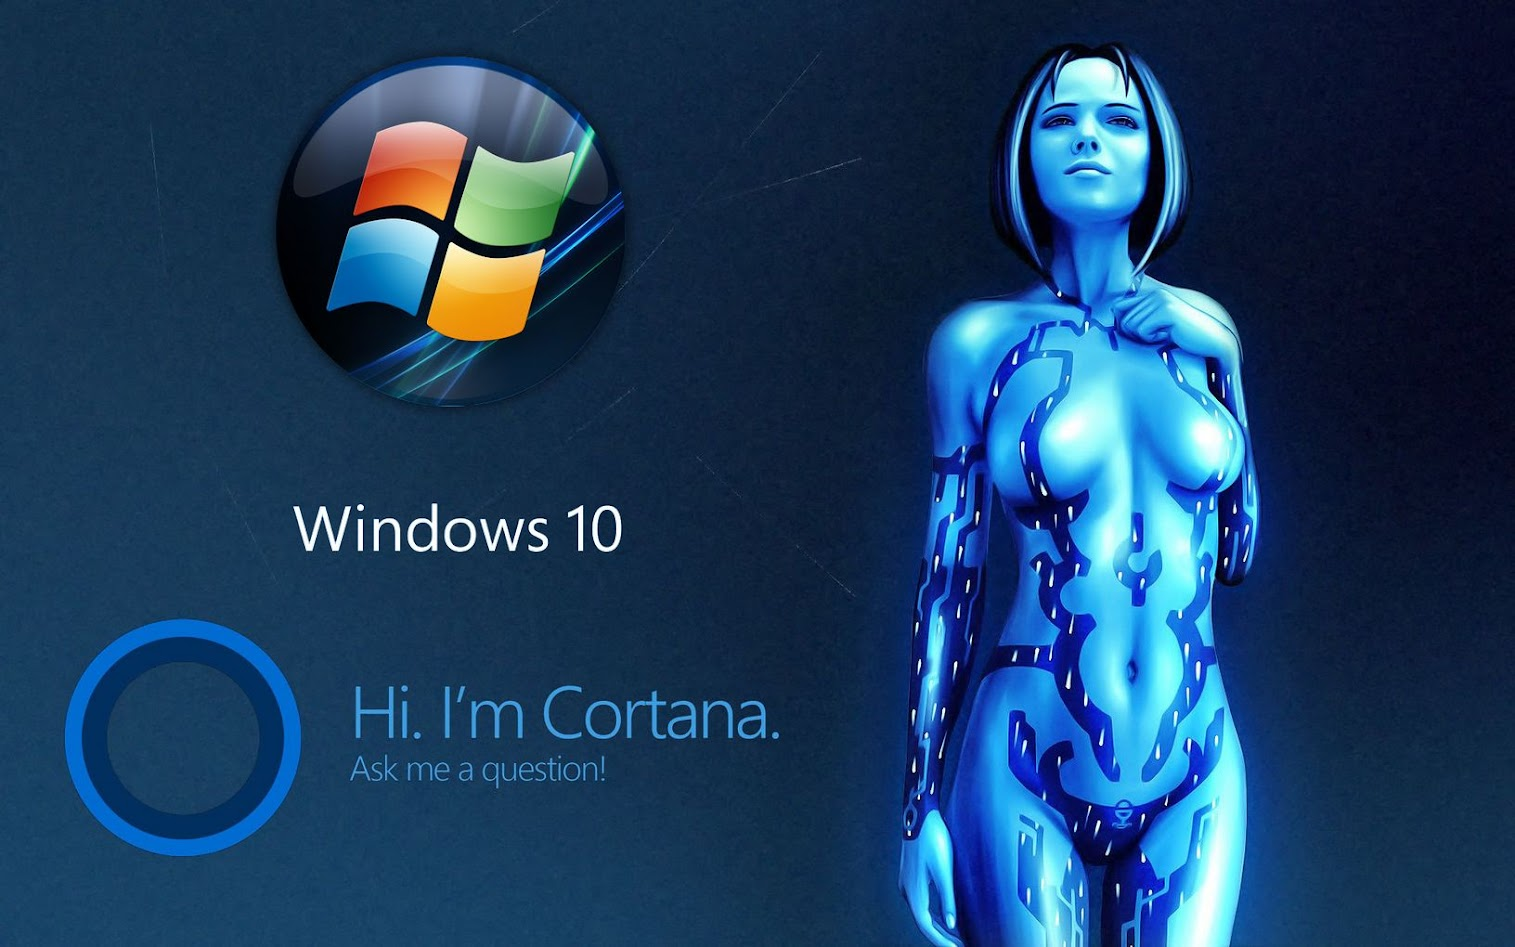 Cosa chiedere a Cortana? L'assistente virtuale di windows 10